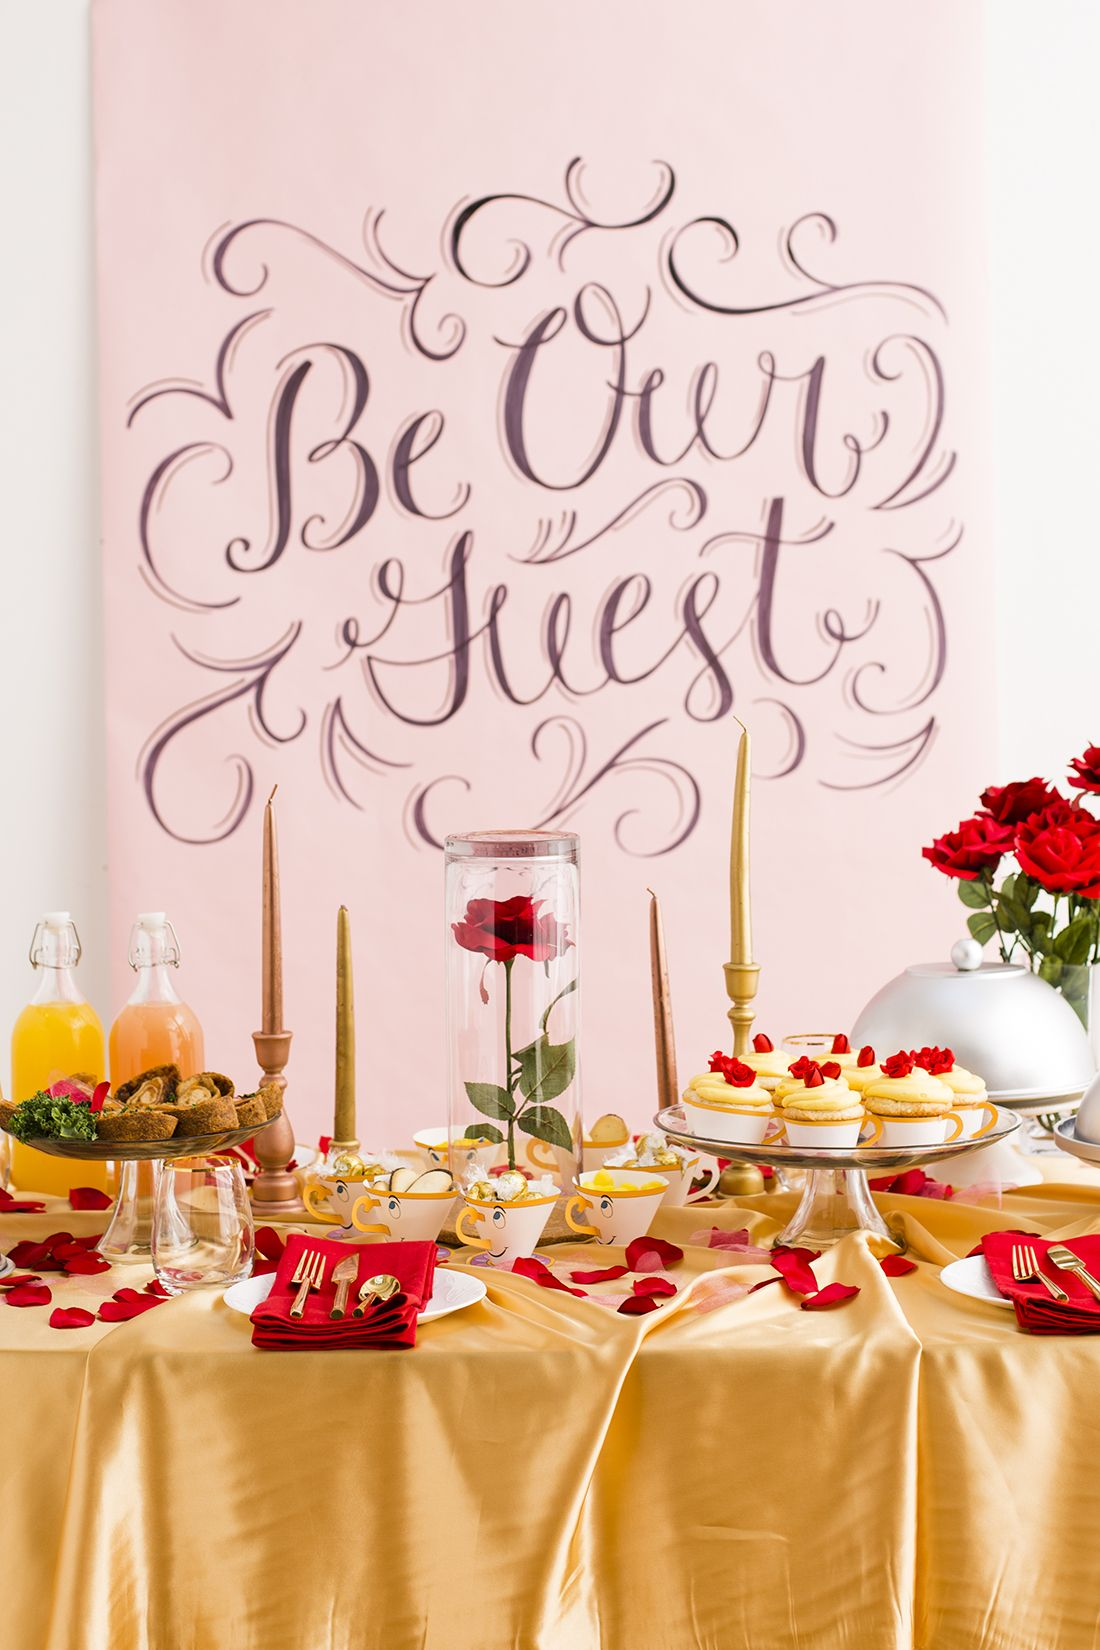 This Beauty And The Beast Inspired Dinner Party Will